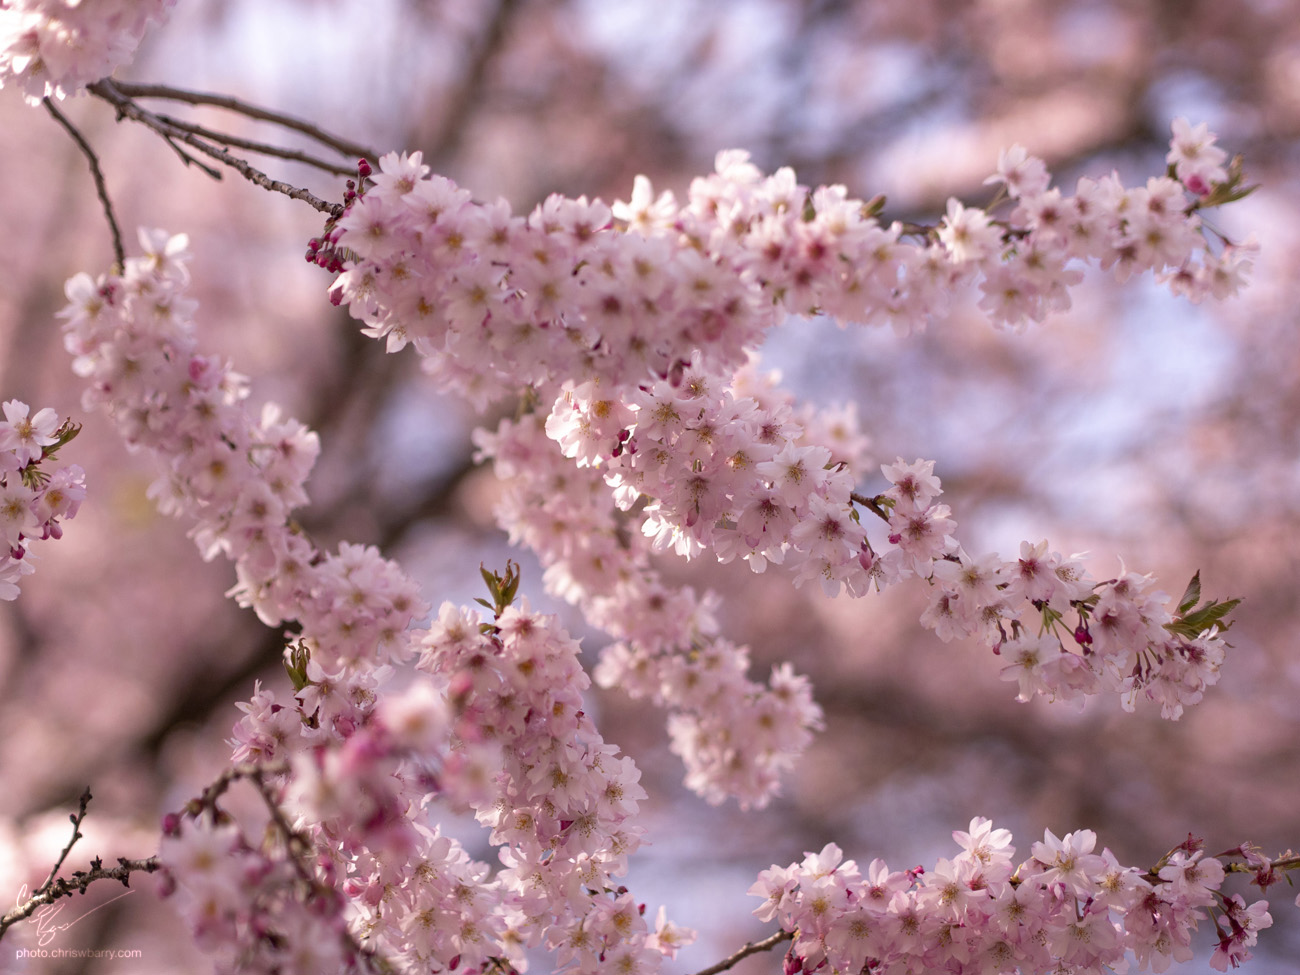 4-21-18: Cherry Blossoms (Probably)